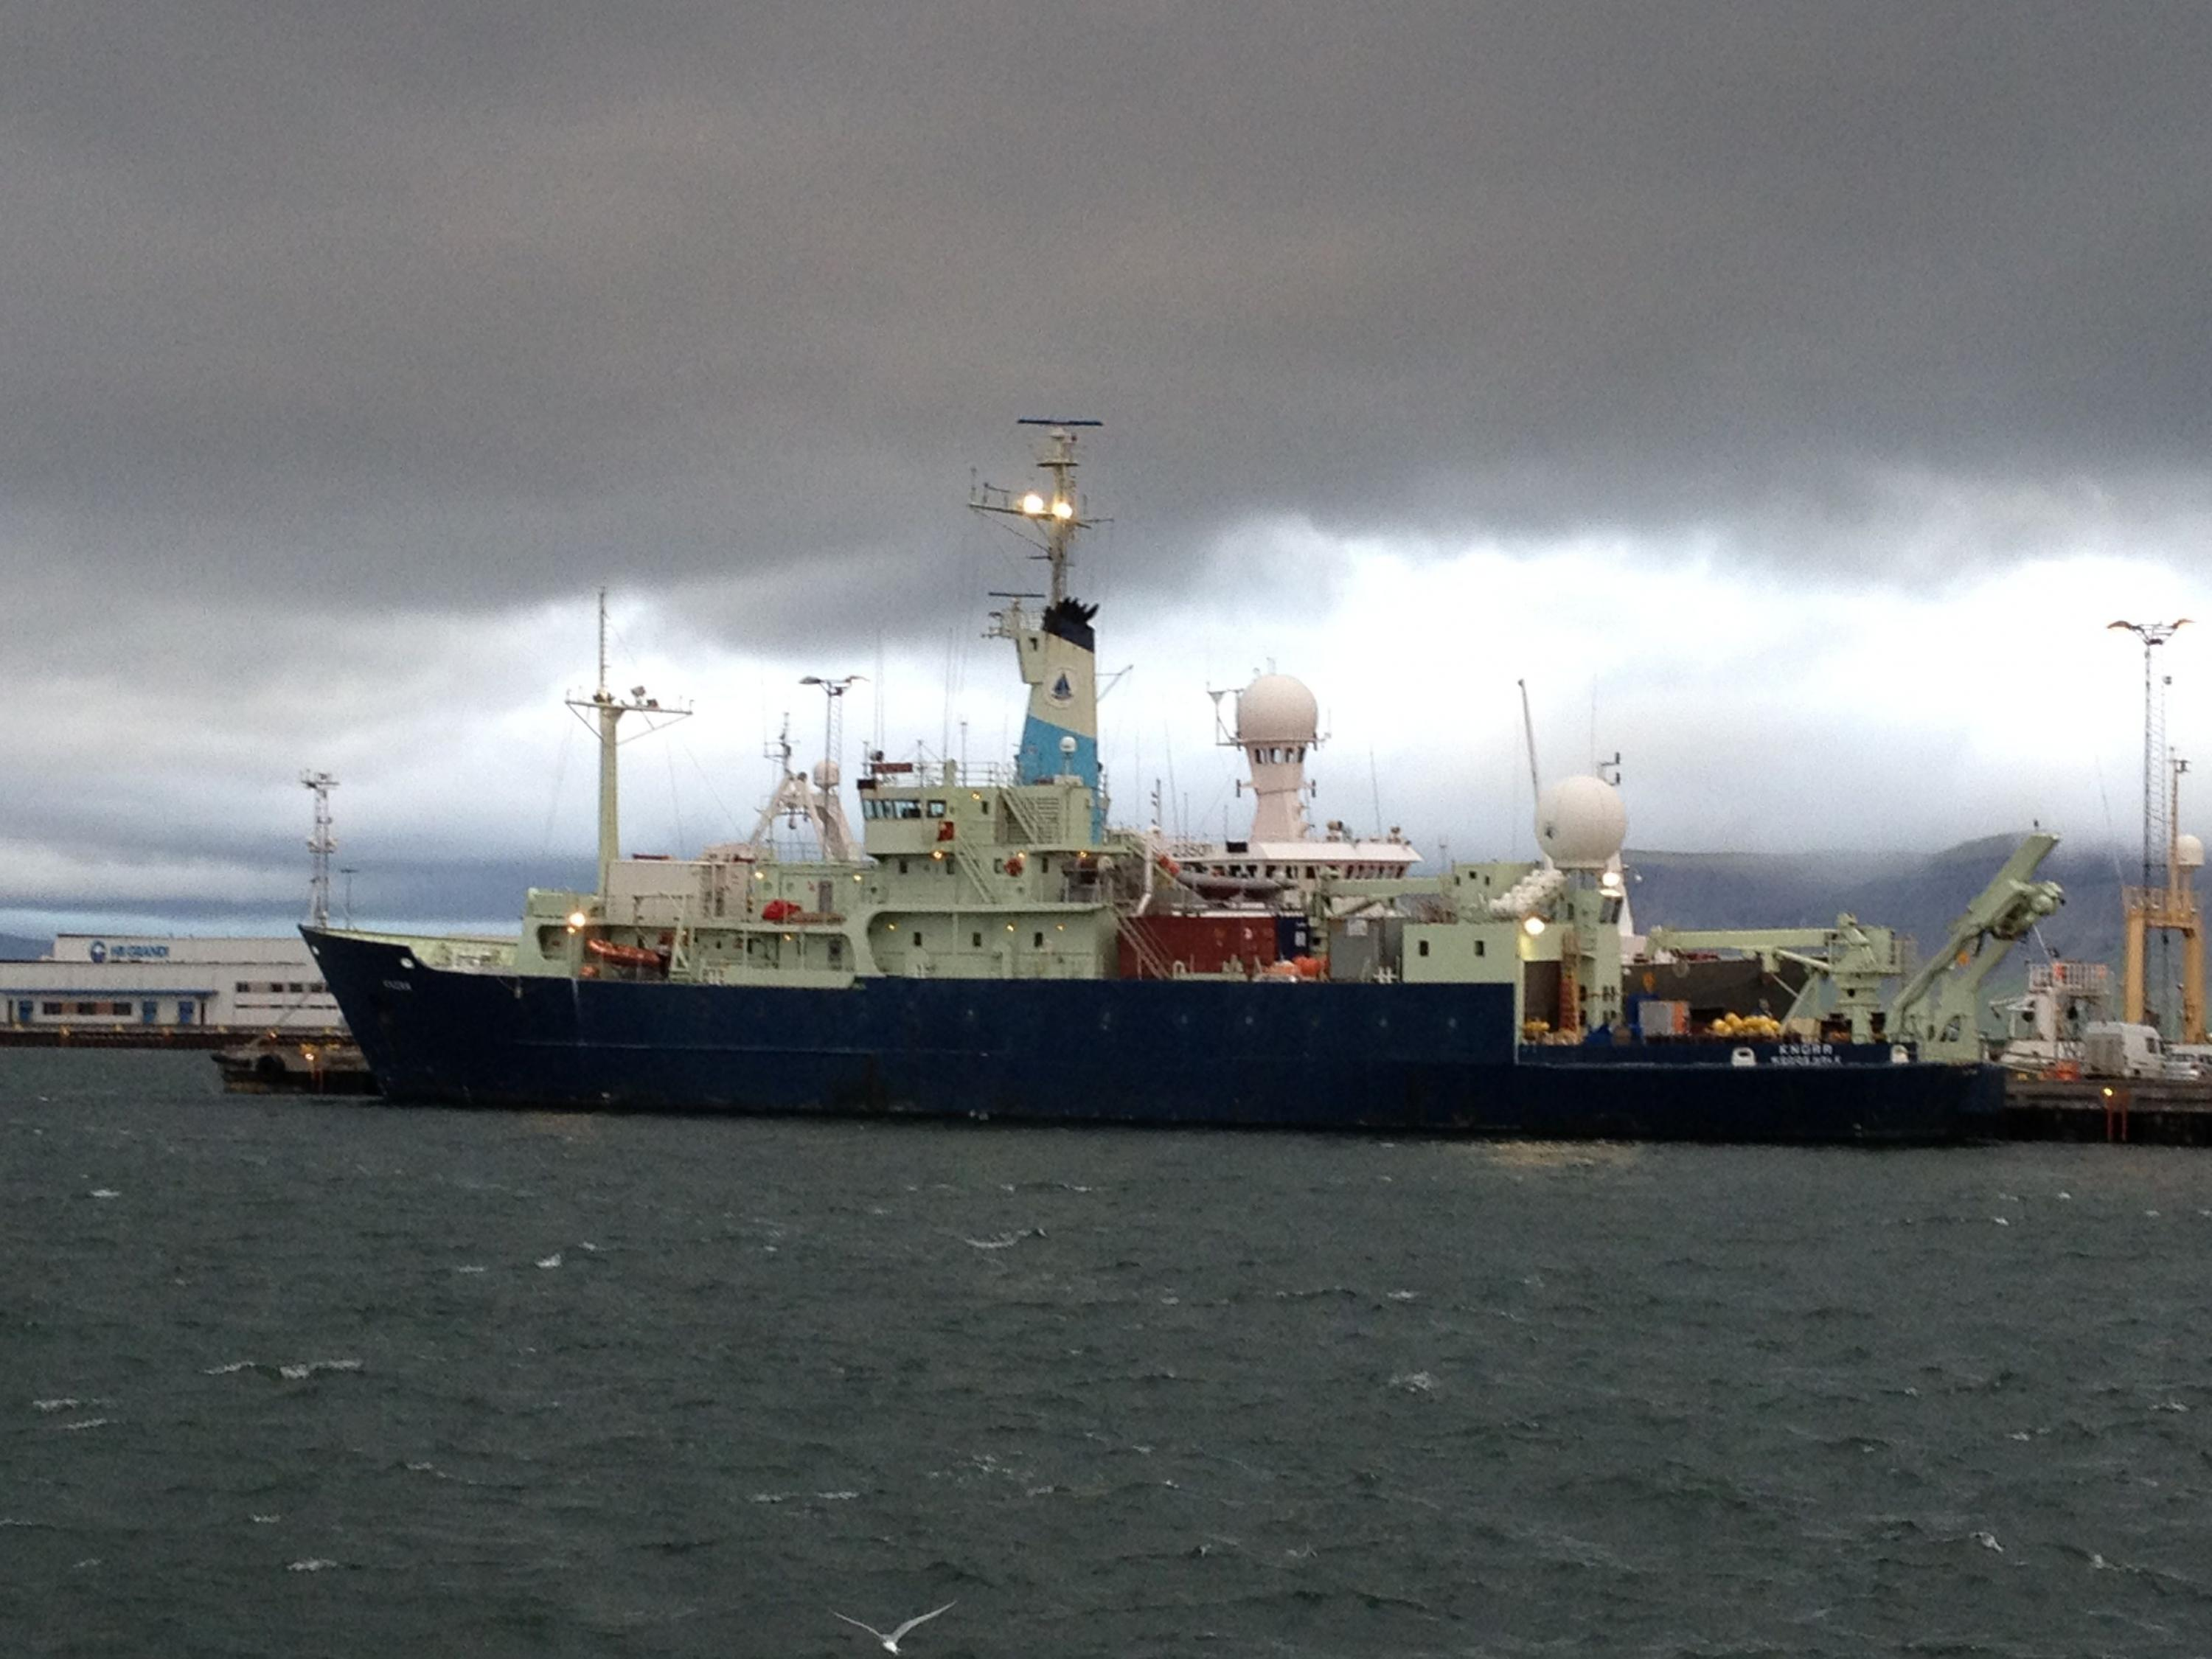 R/V Knorr, a research vessel used by OSNAP. (Photo by Bill Johns)